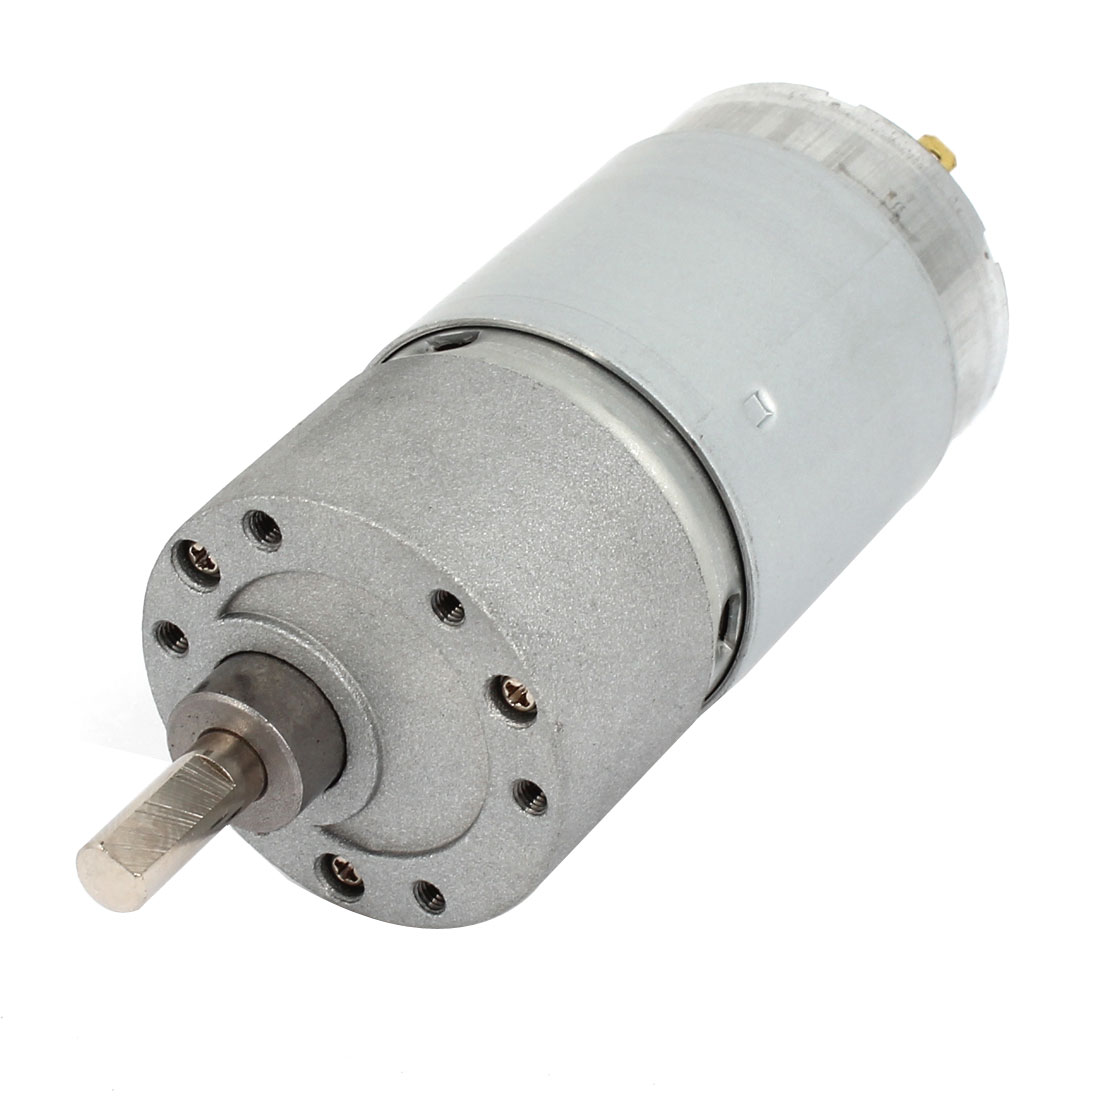 24V 300RPM Permanent Magnetic DC Geared Motor 37GB Repair Part